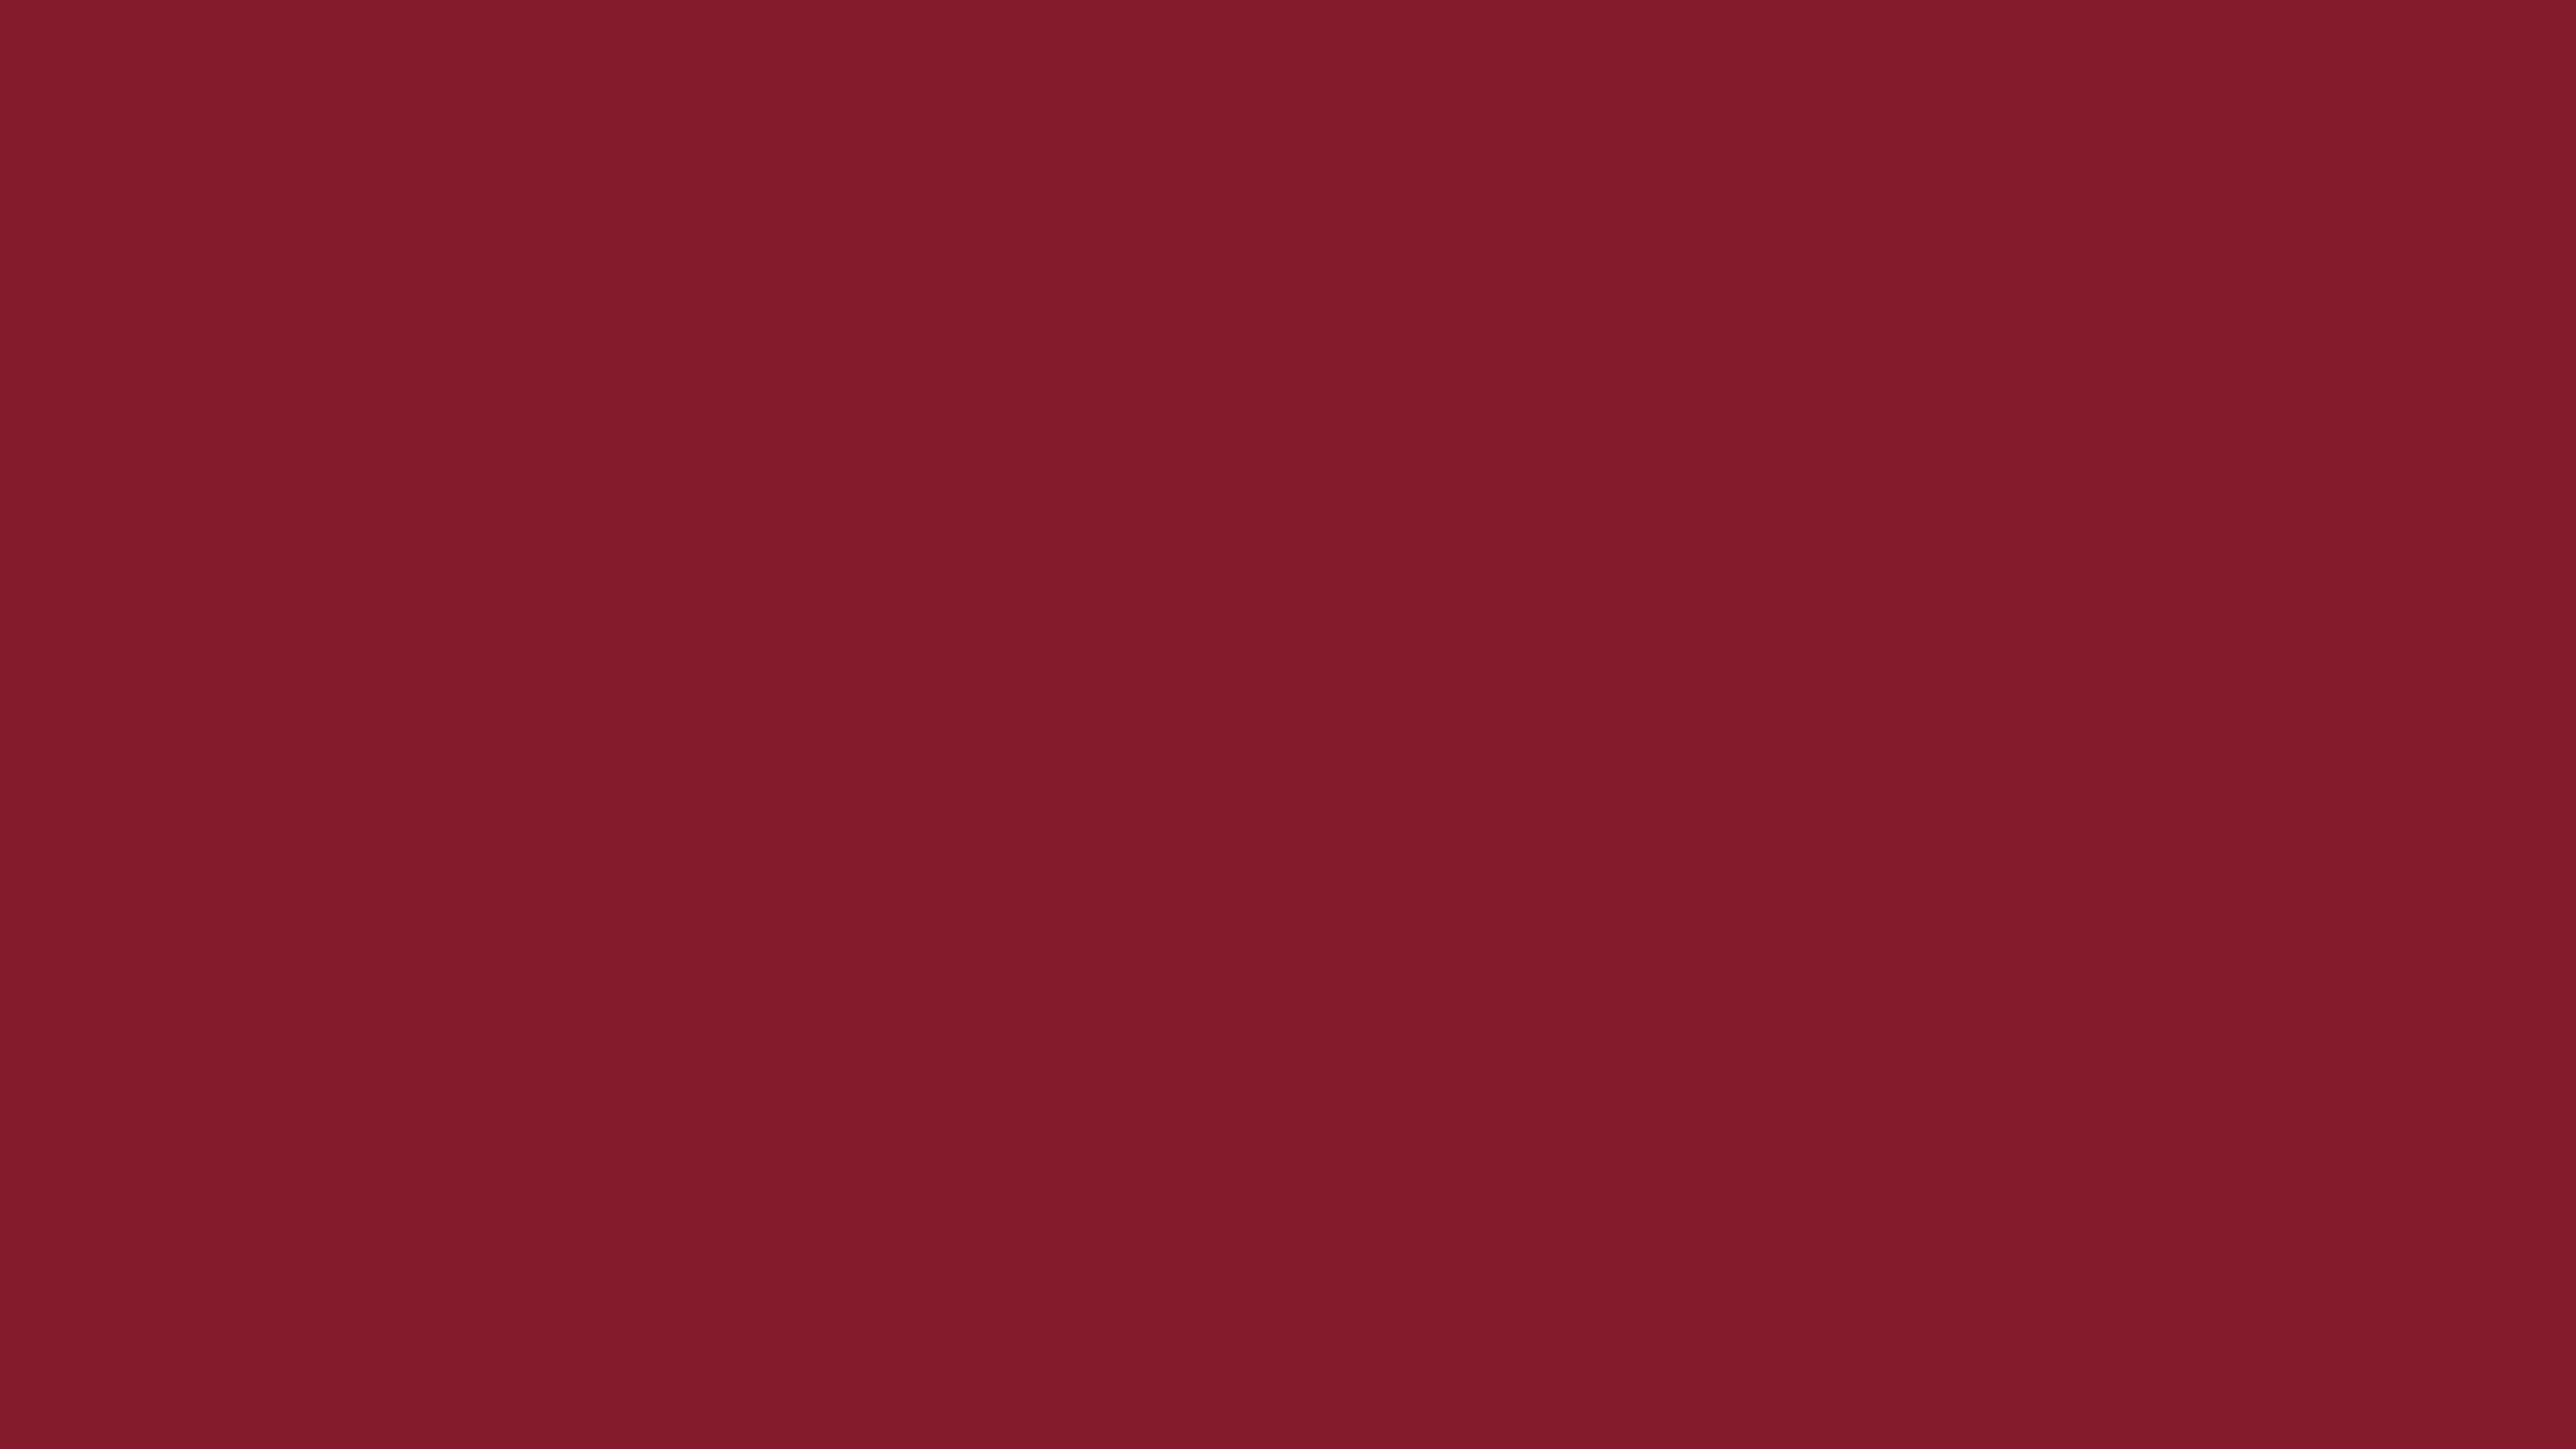 7680x4320 Antique Ruby Solid Color Background